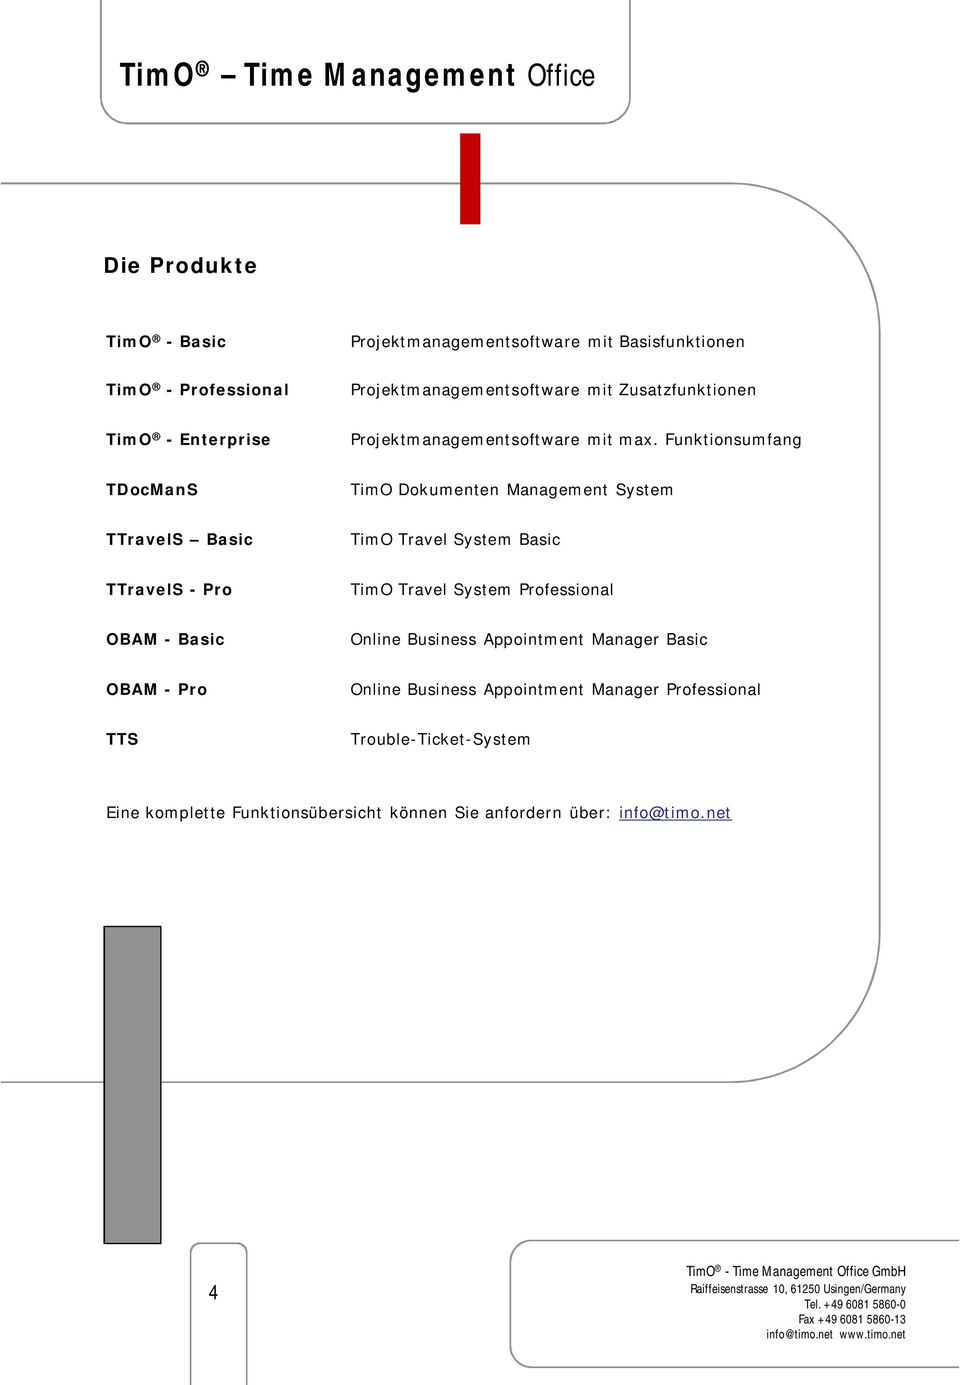 Funktionsumfang TDocManS TimO Dokumenten Management System TTravelS Basic TimO Travel System Basic TTravelS - Pro TimO Travel System